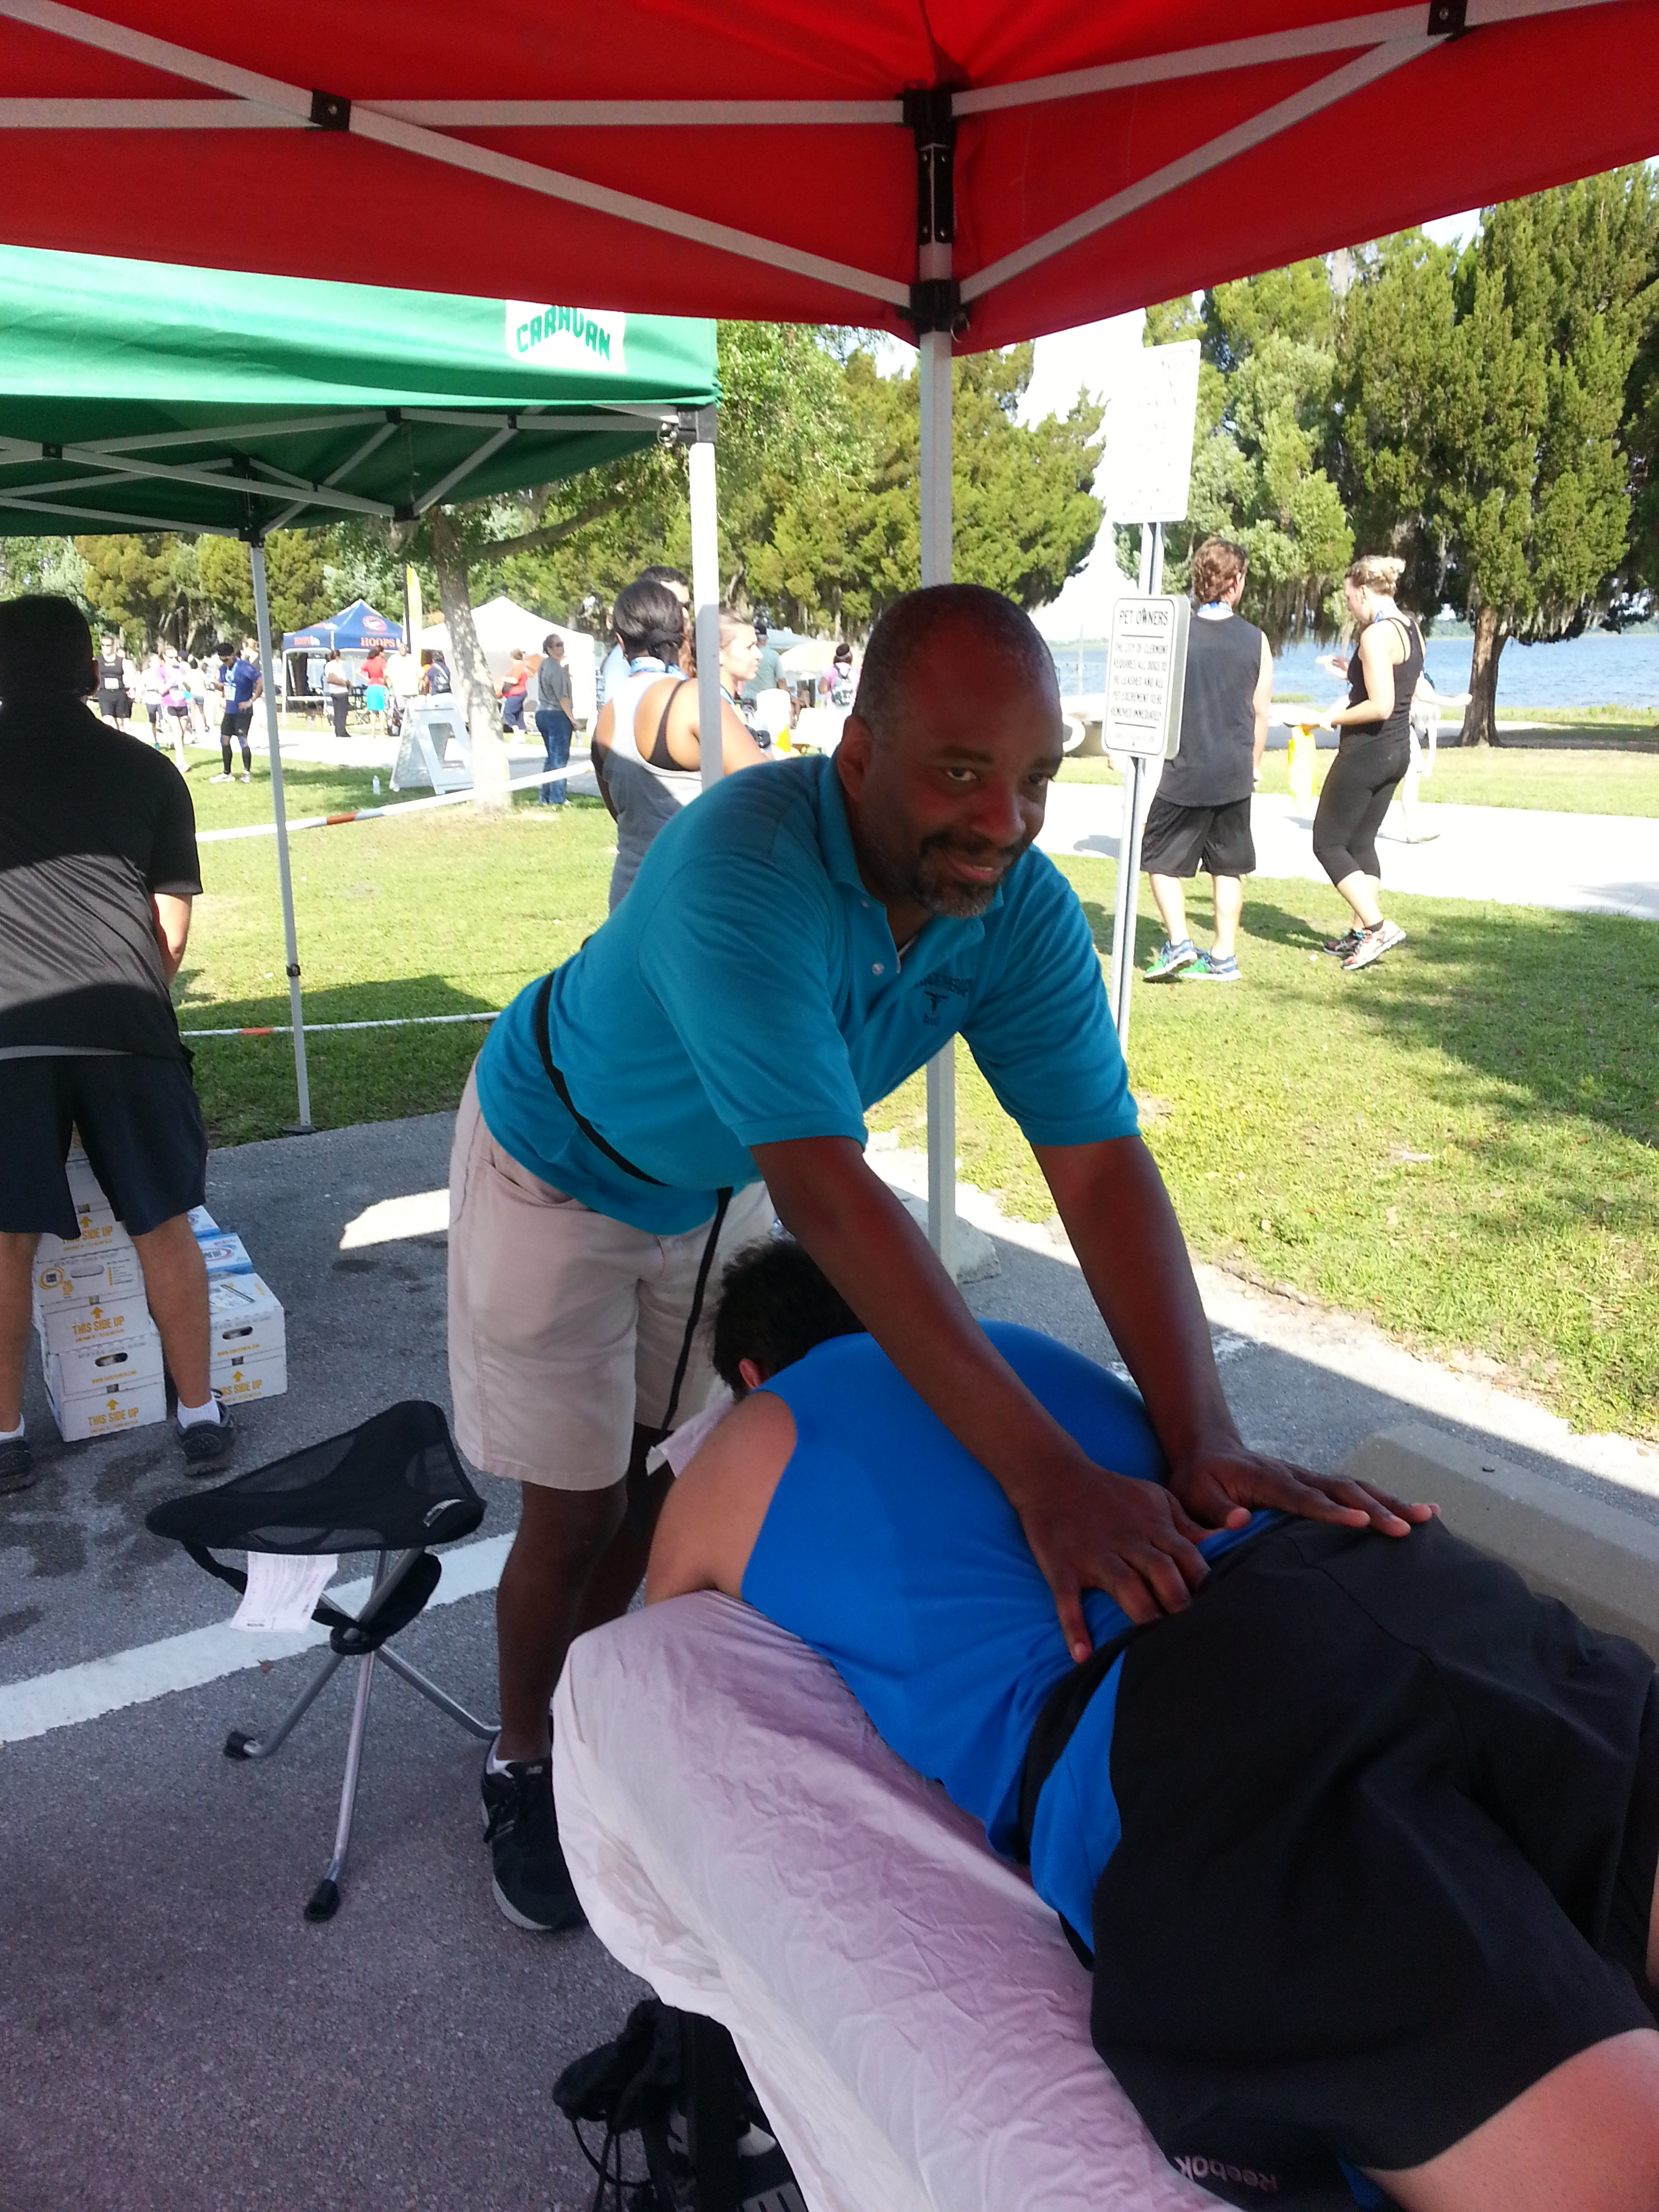 Orlando-Winter Park, Fl Mobile sports Massage - Male Therapist - Relax and Enjoy